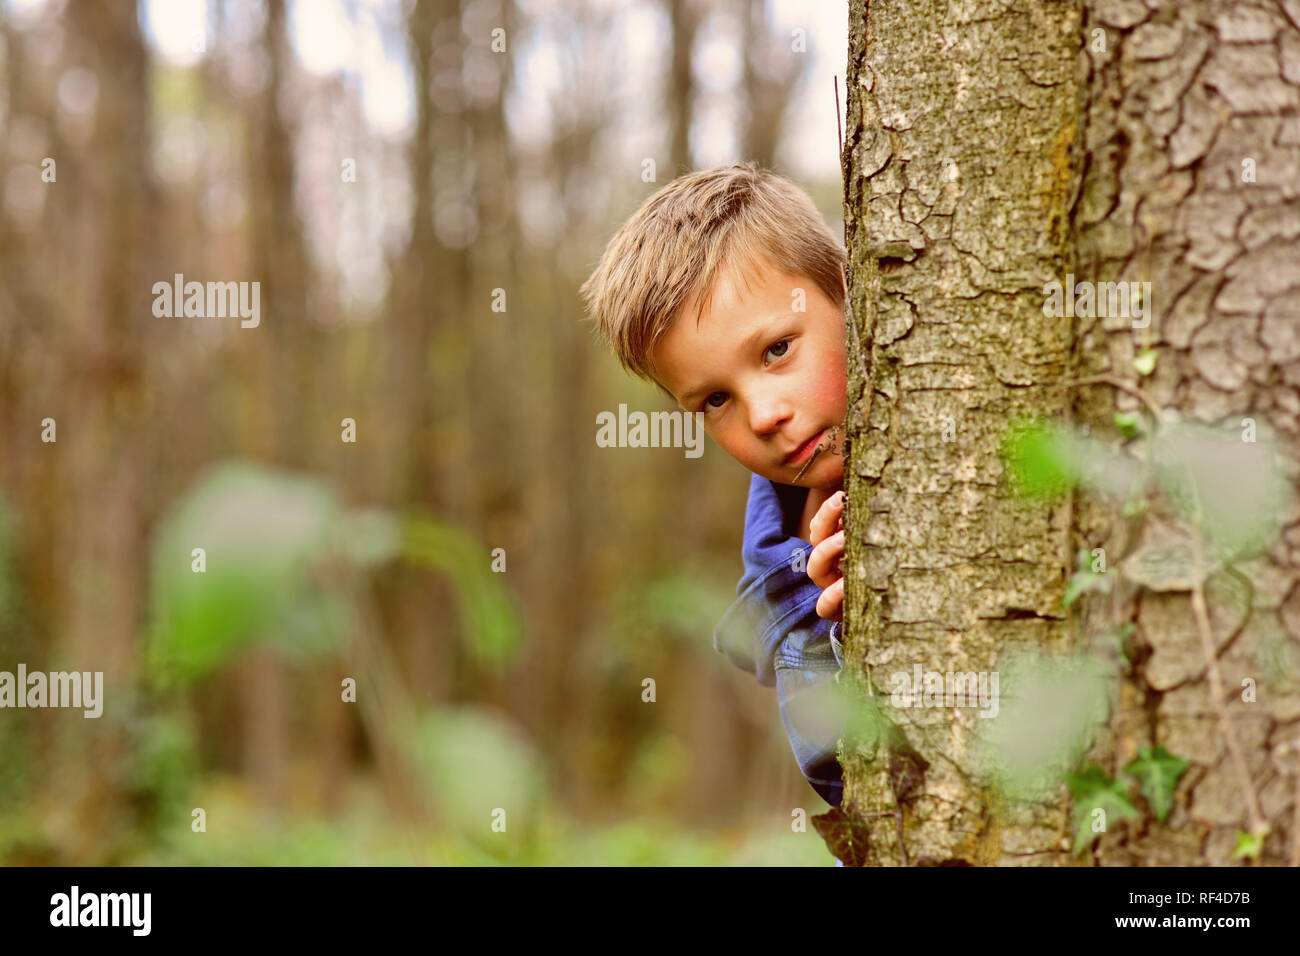 Enjoying my childhood. Little boy have fun in woods. Little boy play hide and seek. Outdoor games is my childhood - Stock Image